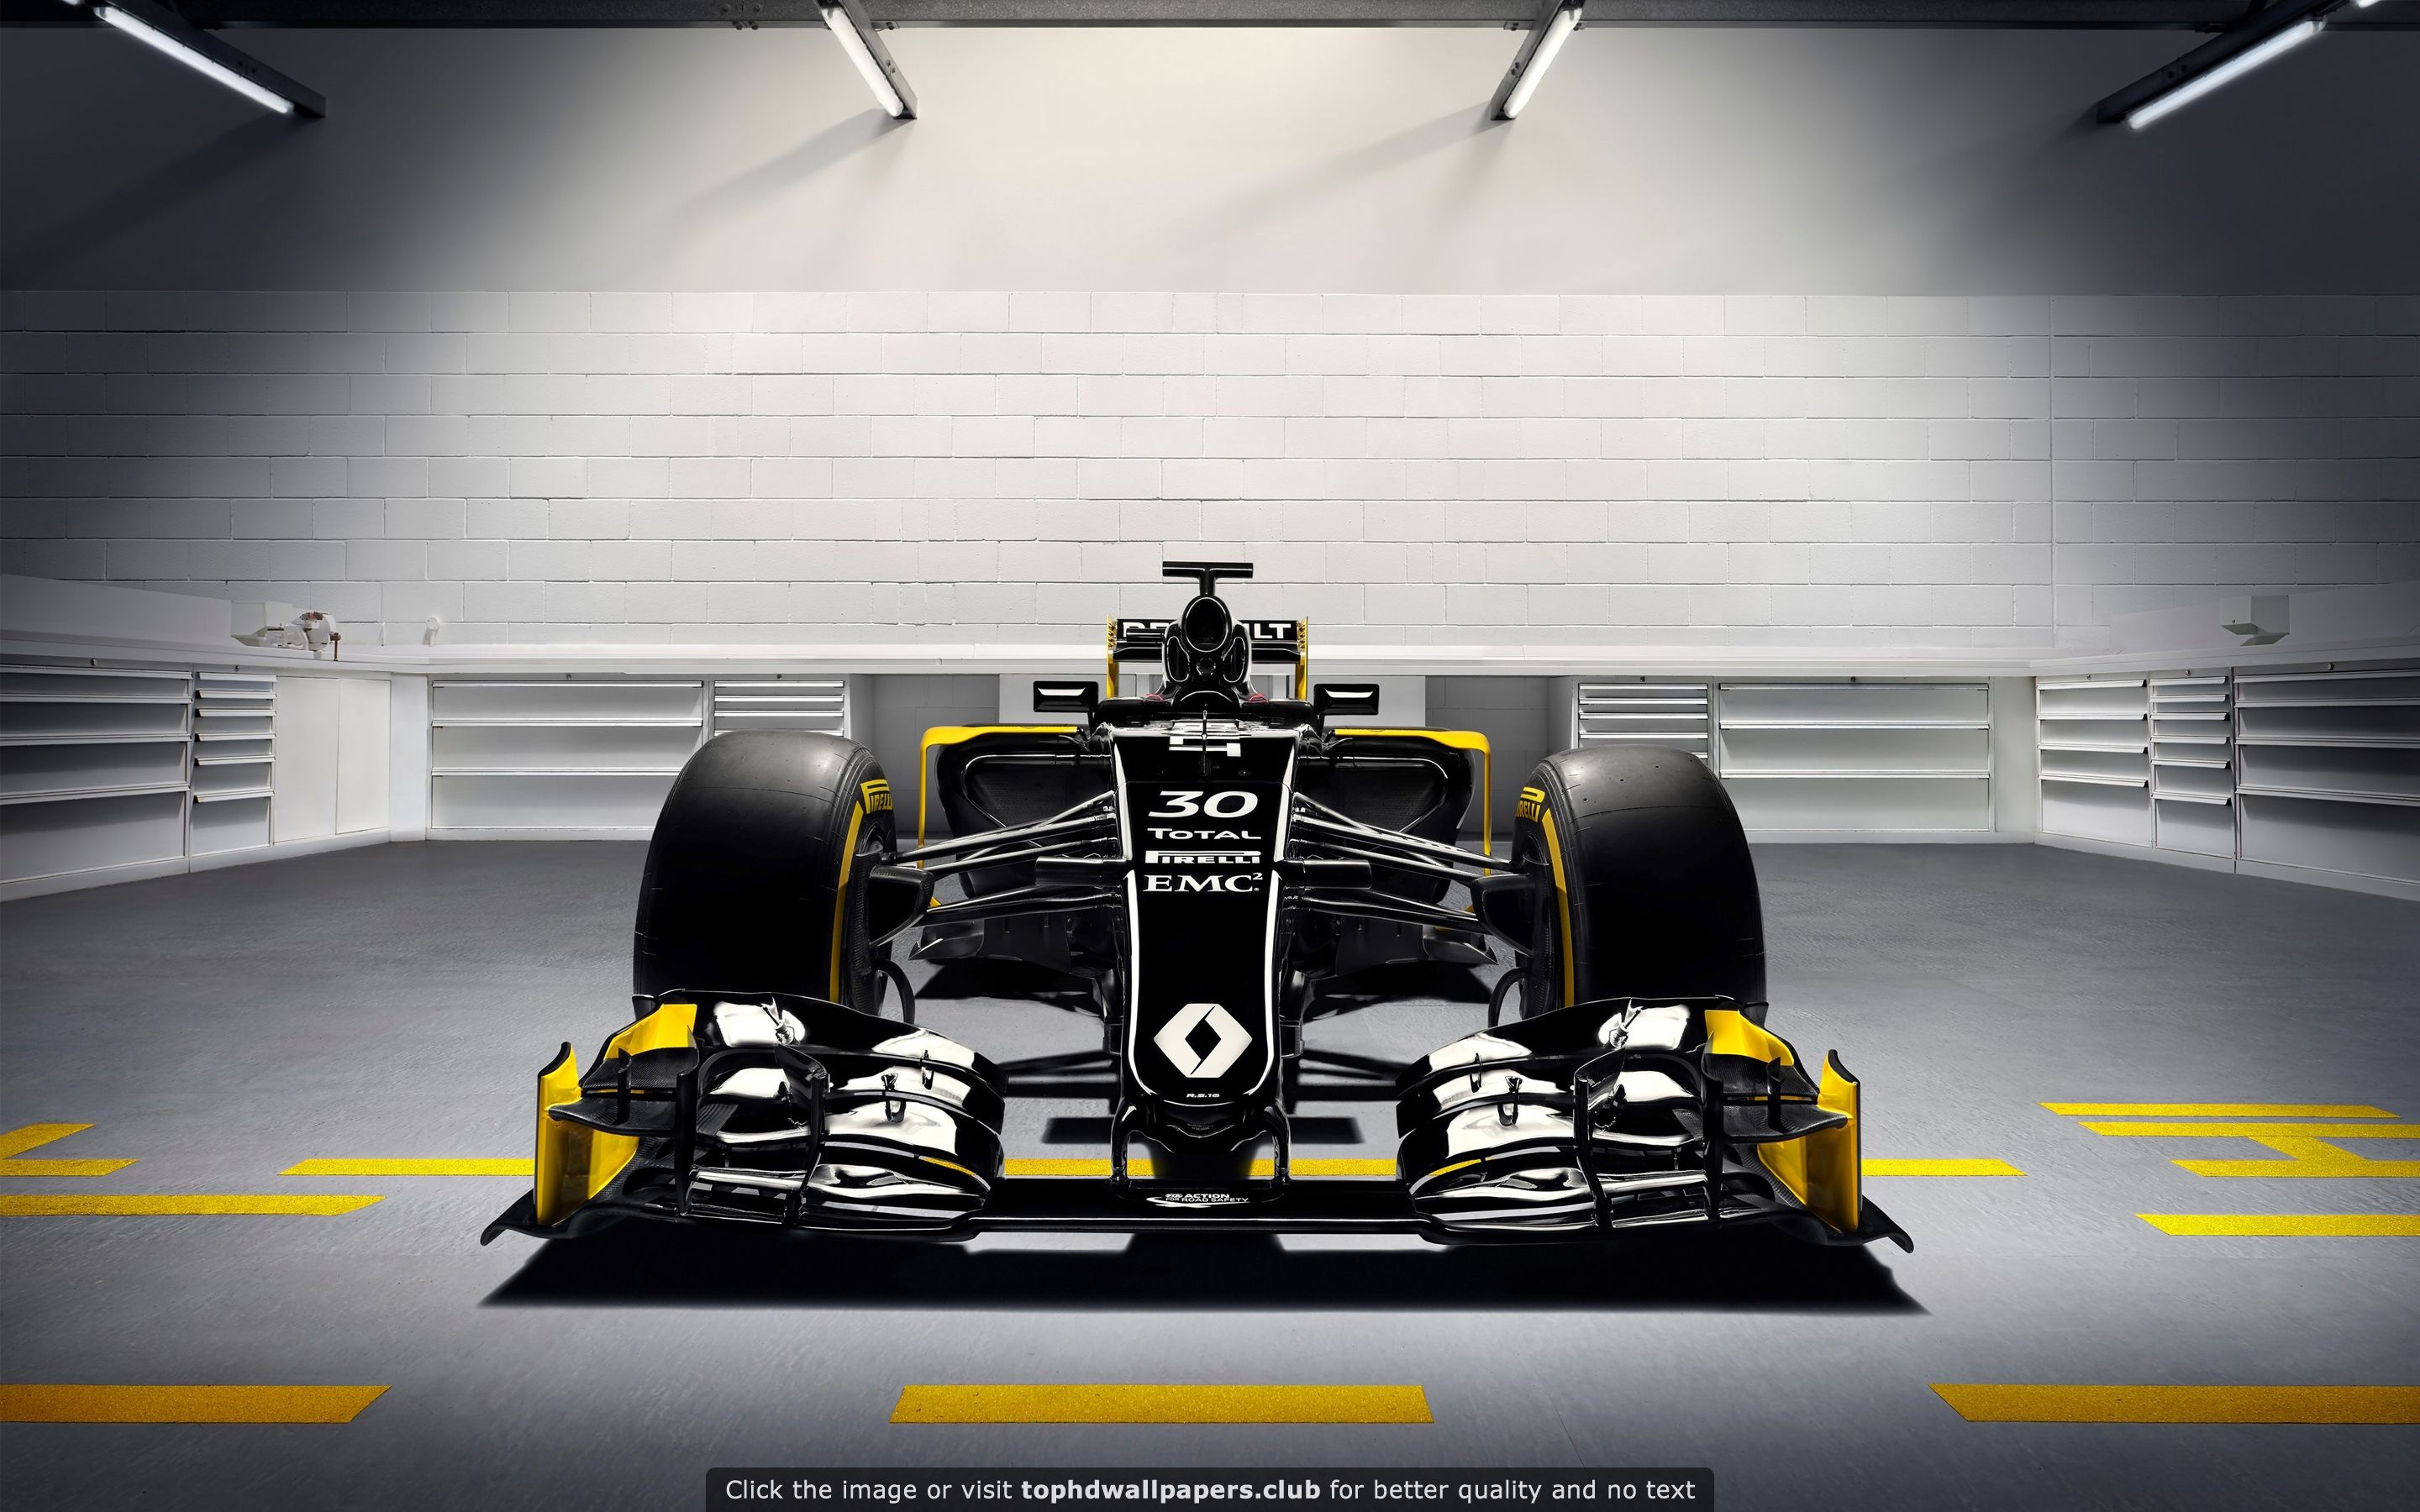 Renault RS Formula Car 4K or HD wallpaper for your PC, Mac or Mobile device